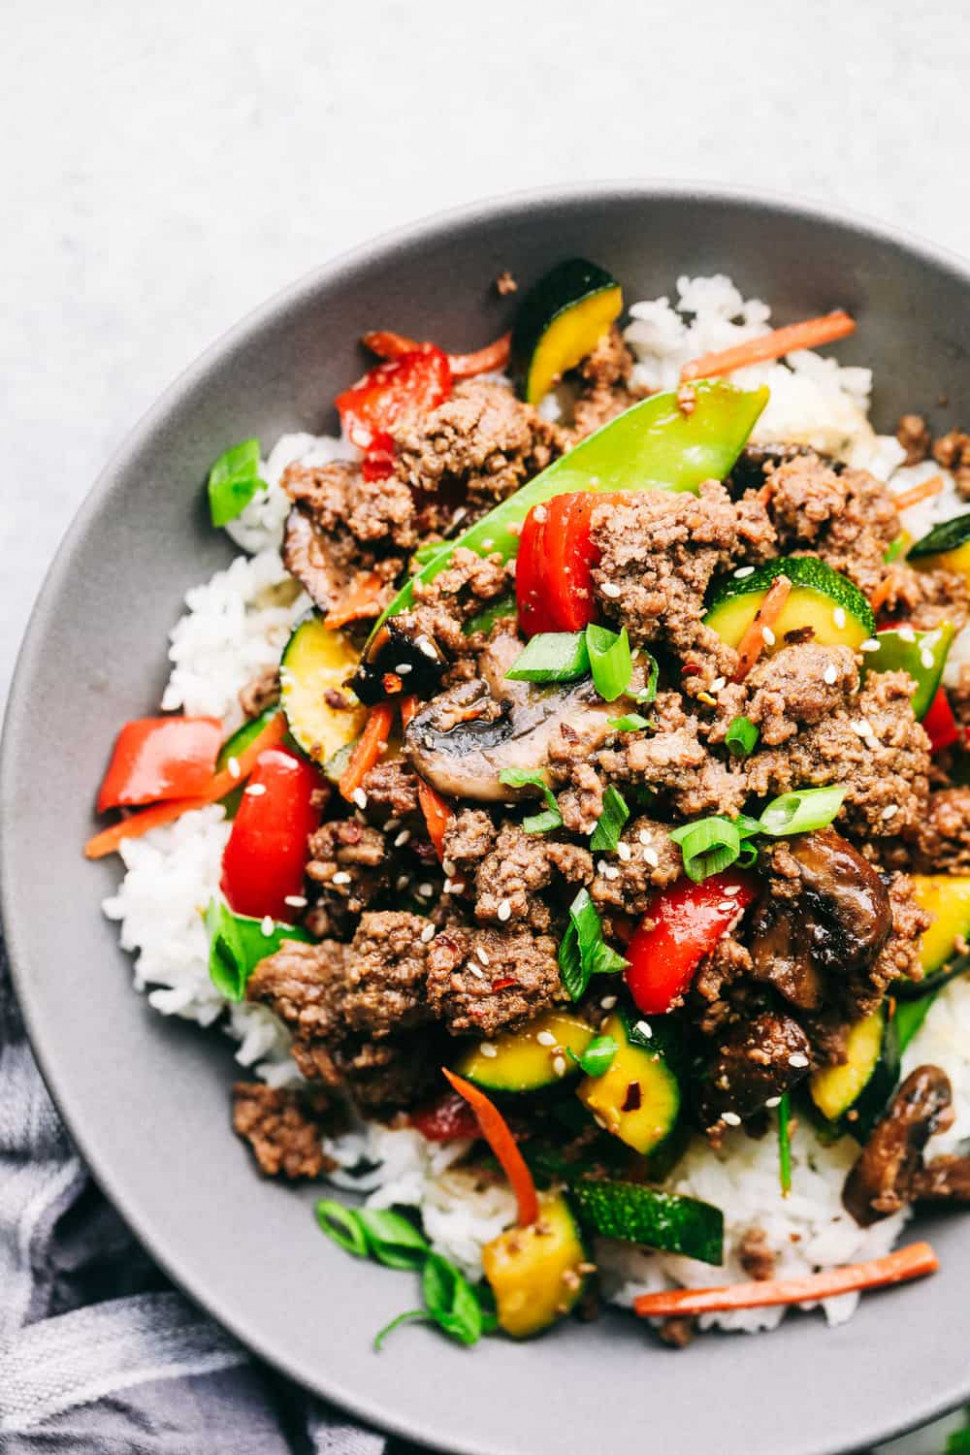 Korean Ground Beef Stir Fry - recipes using ground beef healthy